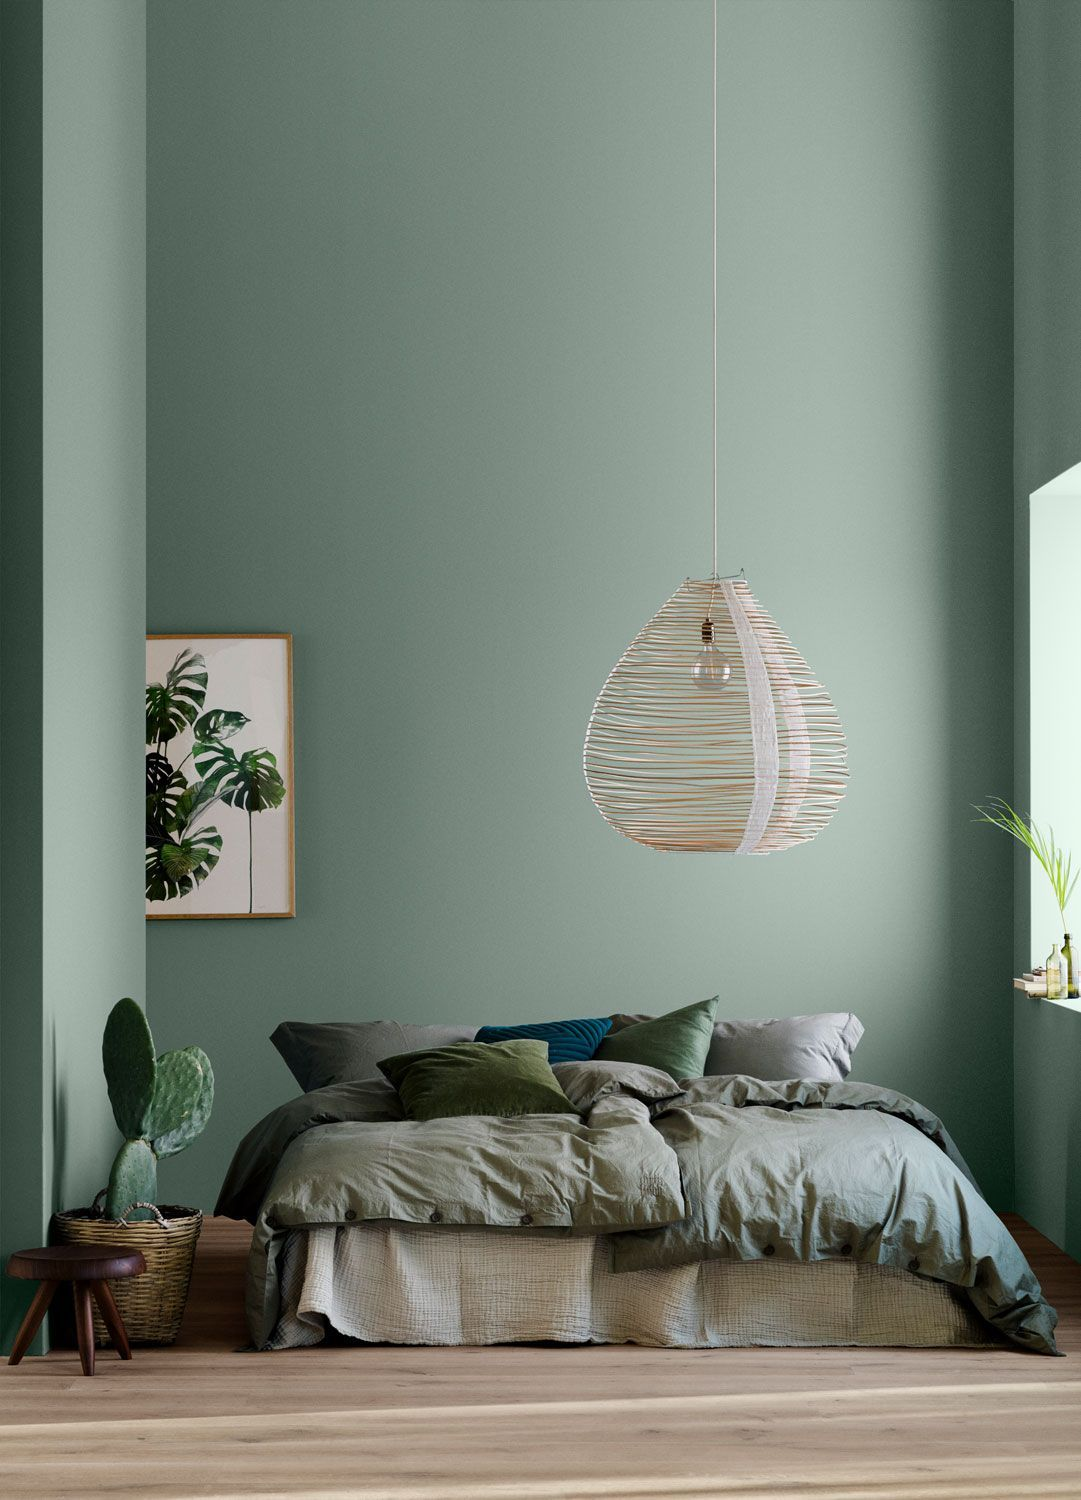 expanded image LampSchlafzimmer  InteriorFurniture  Pinterest